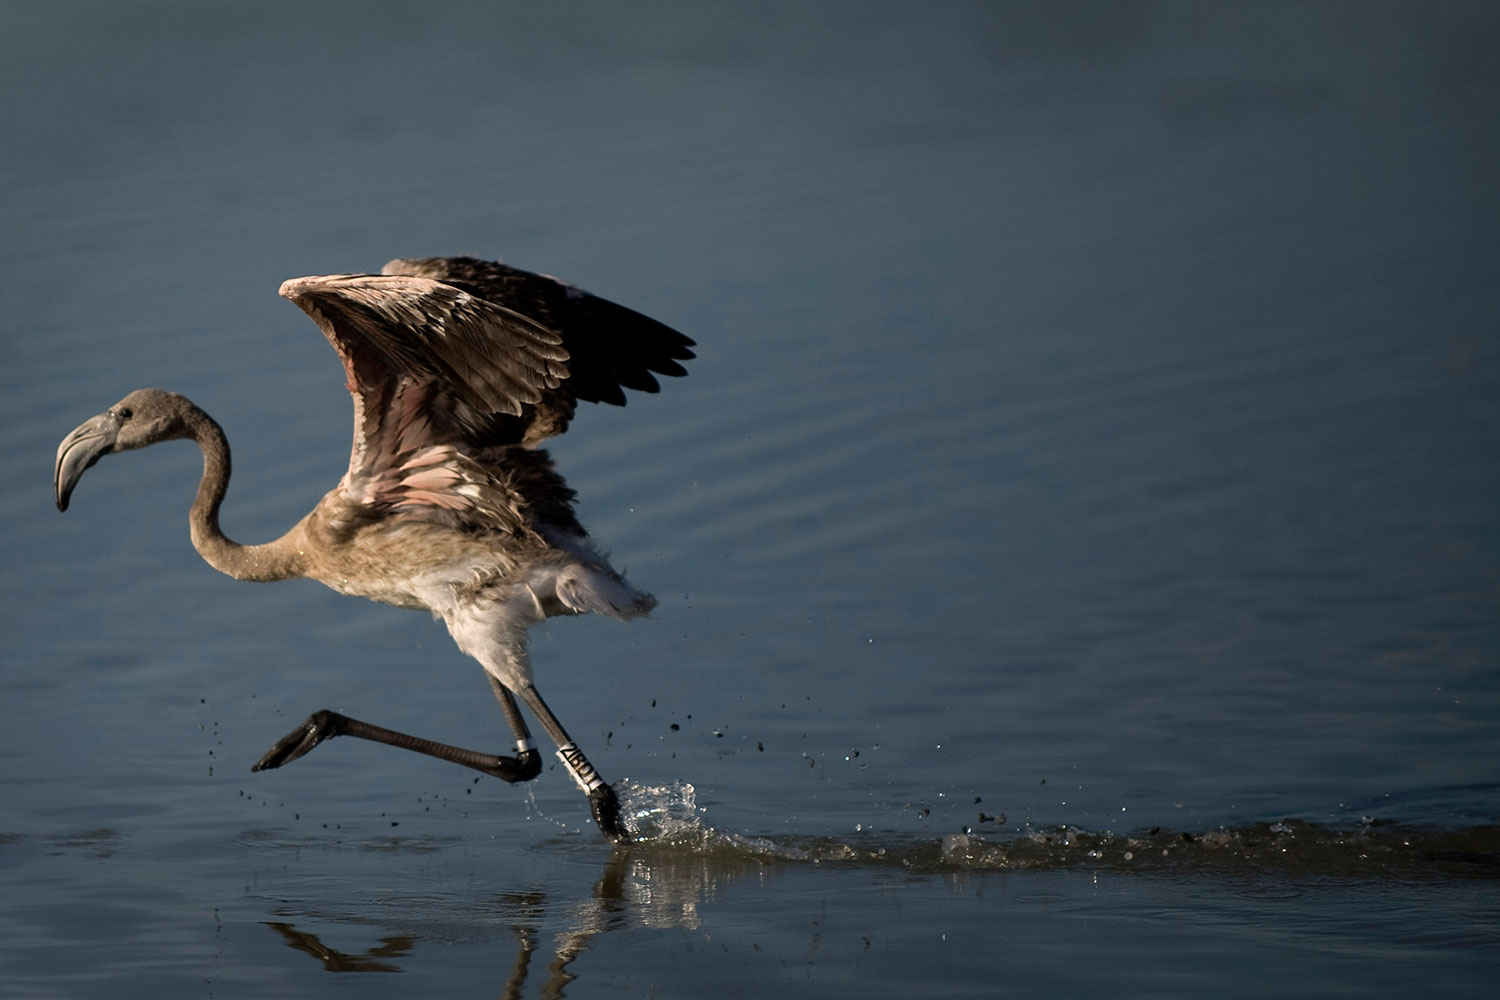 A flamingo chick runs on the Fuente de Piedra lake during a tagging and control operation to monitor the evolution of the species, Aug. 6, 2011.